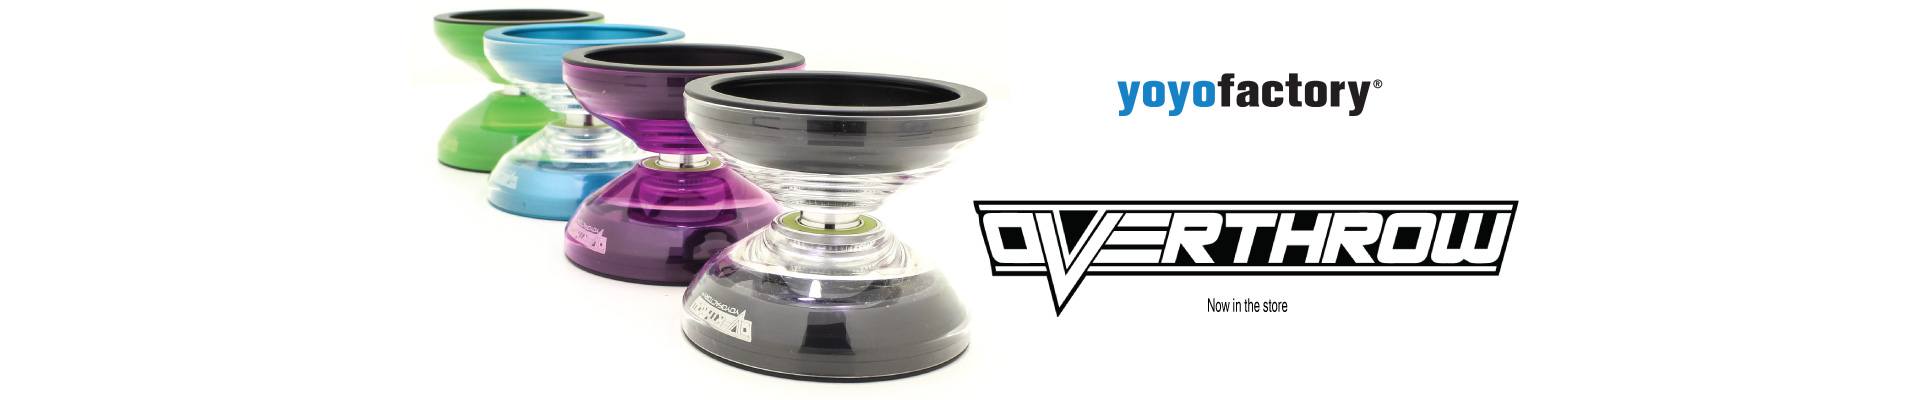 YoYoFactory Overthrow now in the store